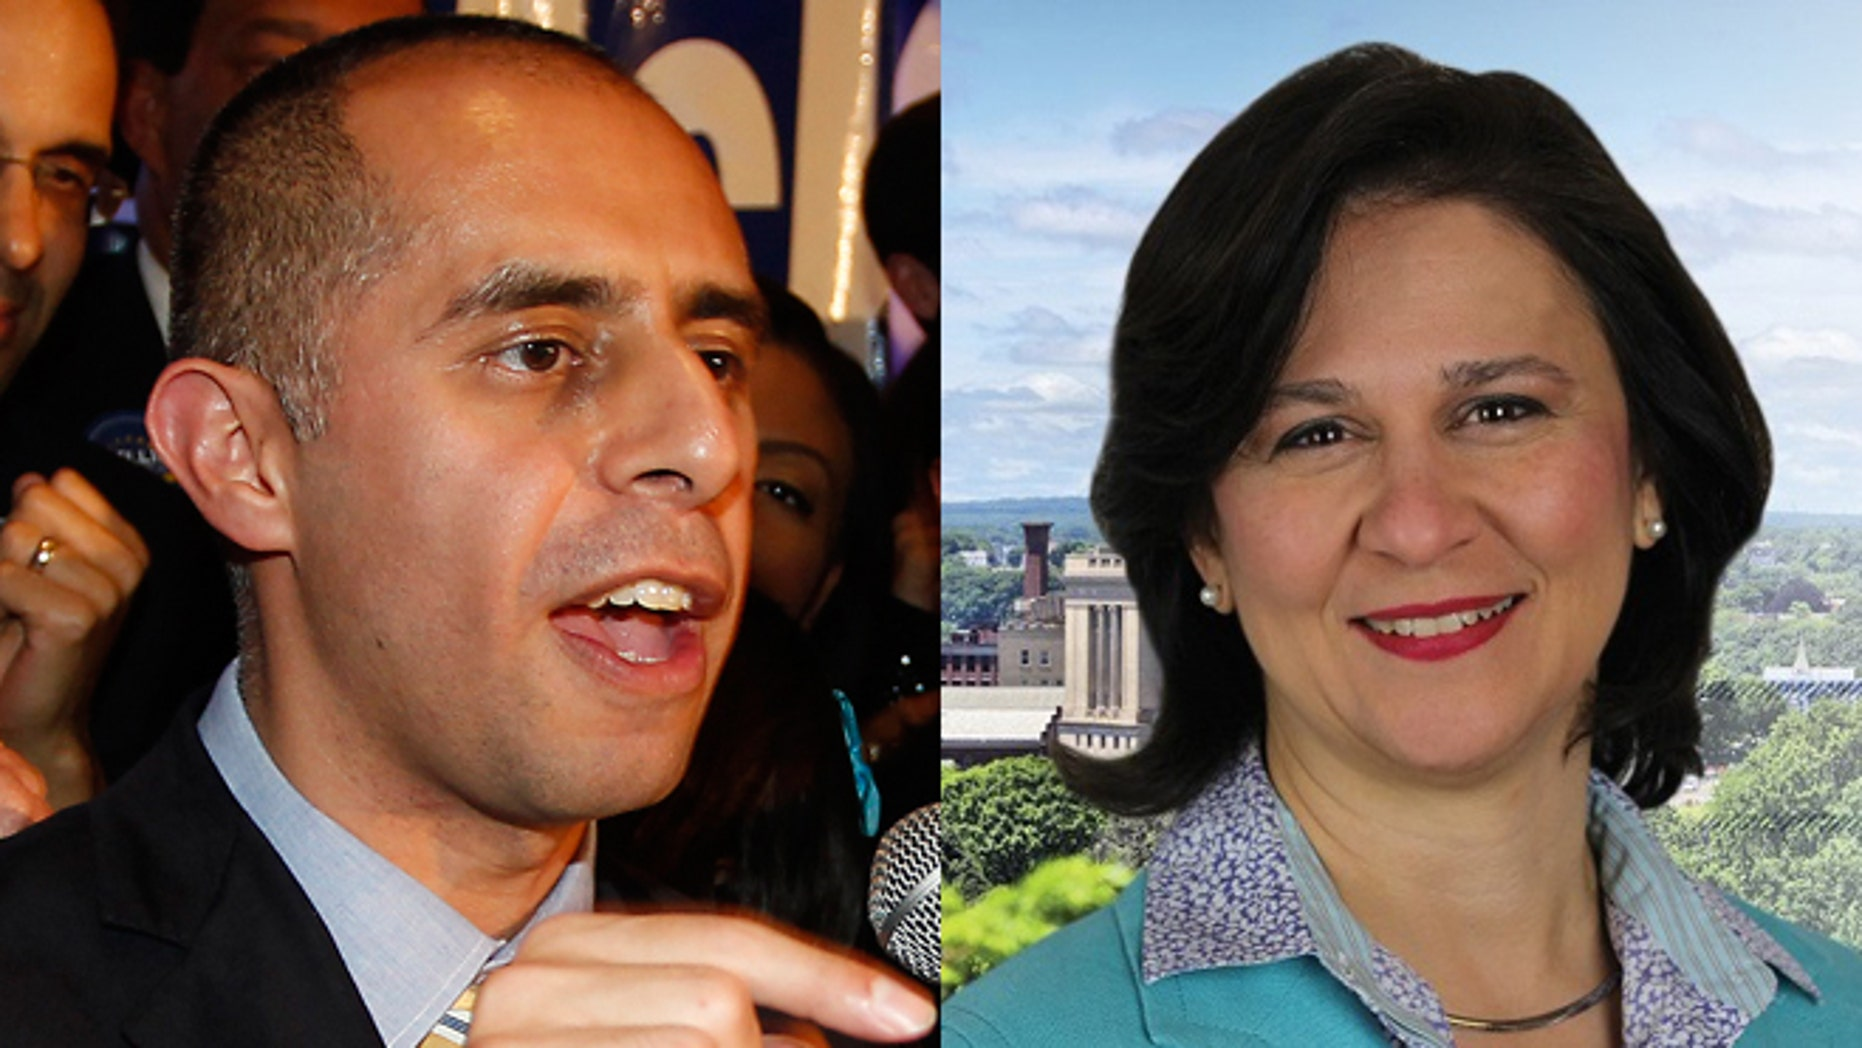 Left: Democrat Jorge Elorza celebrates his win over Independent Vincent Cianci, Jr. in the Providence mayoral race, Tuesday, Nov. 4, 2014, in Providence, R.I.. (AP Photo/Stew Milne) Right: Nellie Gorbea (Photo: Gorbea campaign website)